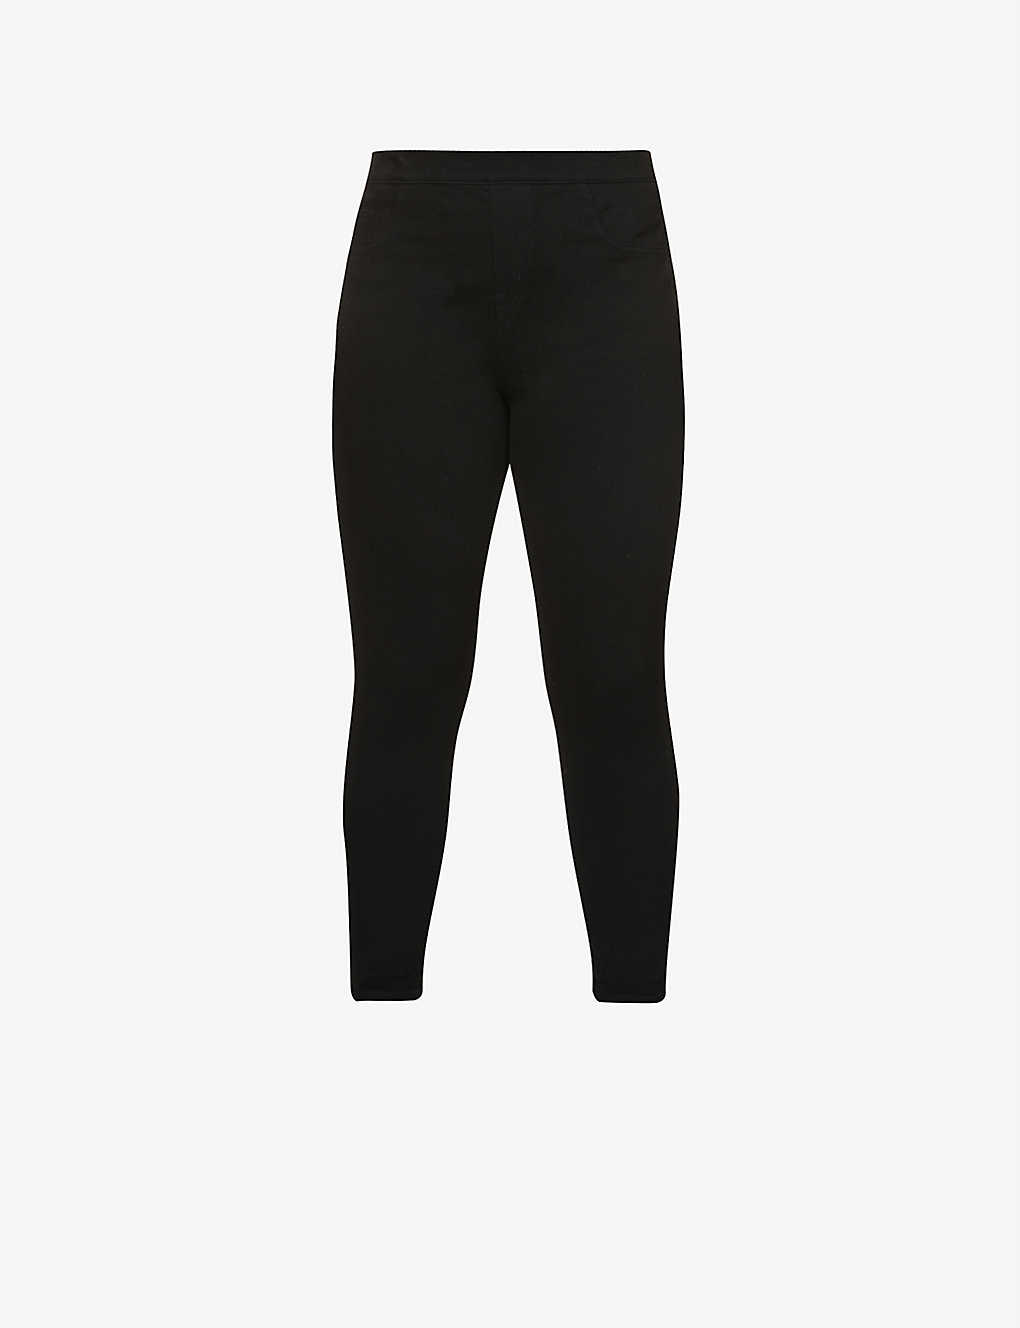 fad6aeef3c SPANX - Jean-ish cotton-blend leggings | Selfridges.com